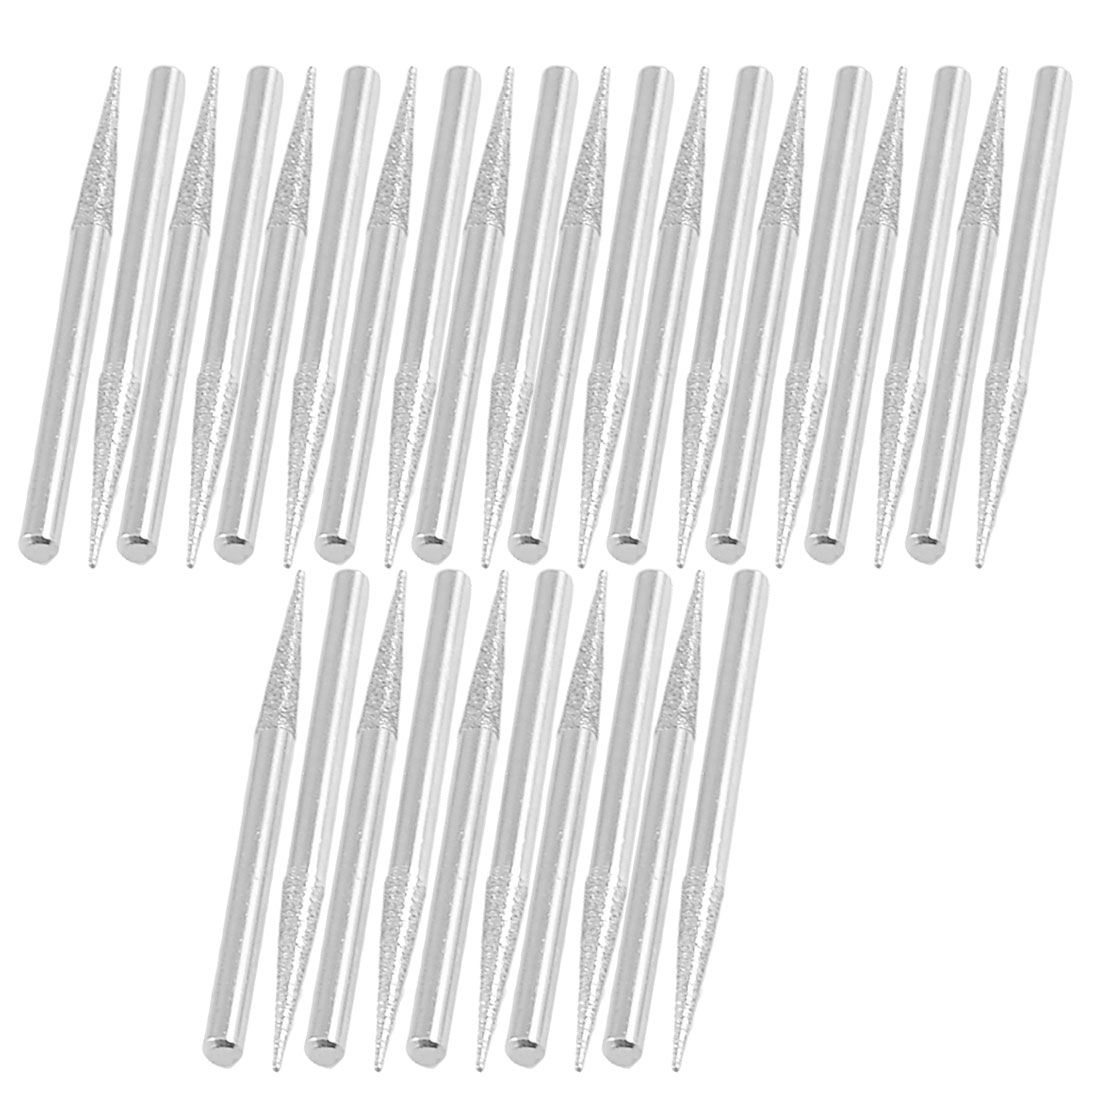 30 Pcs 3mm Dia Tapered Head 3mm Shank Grinding Diamond Mounted Bits Silver Tone